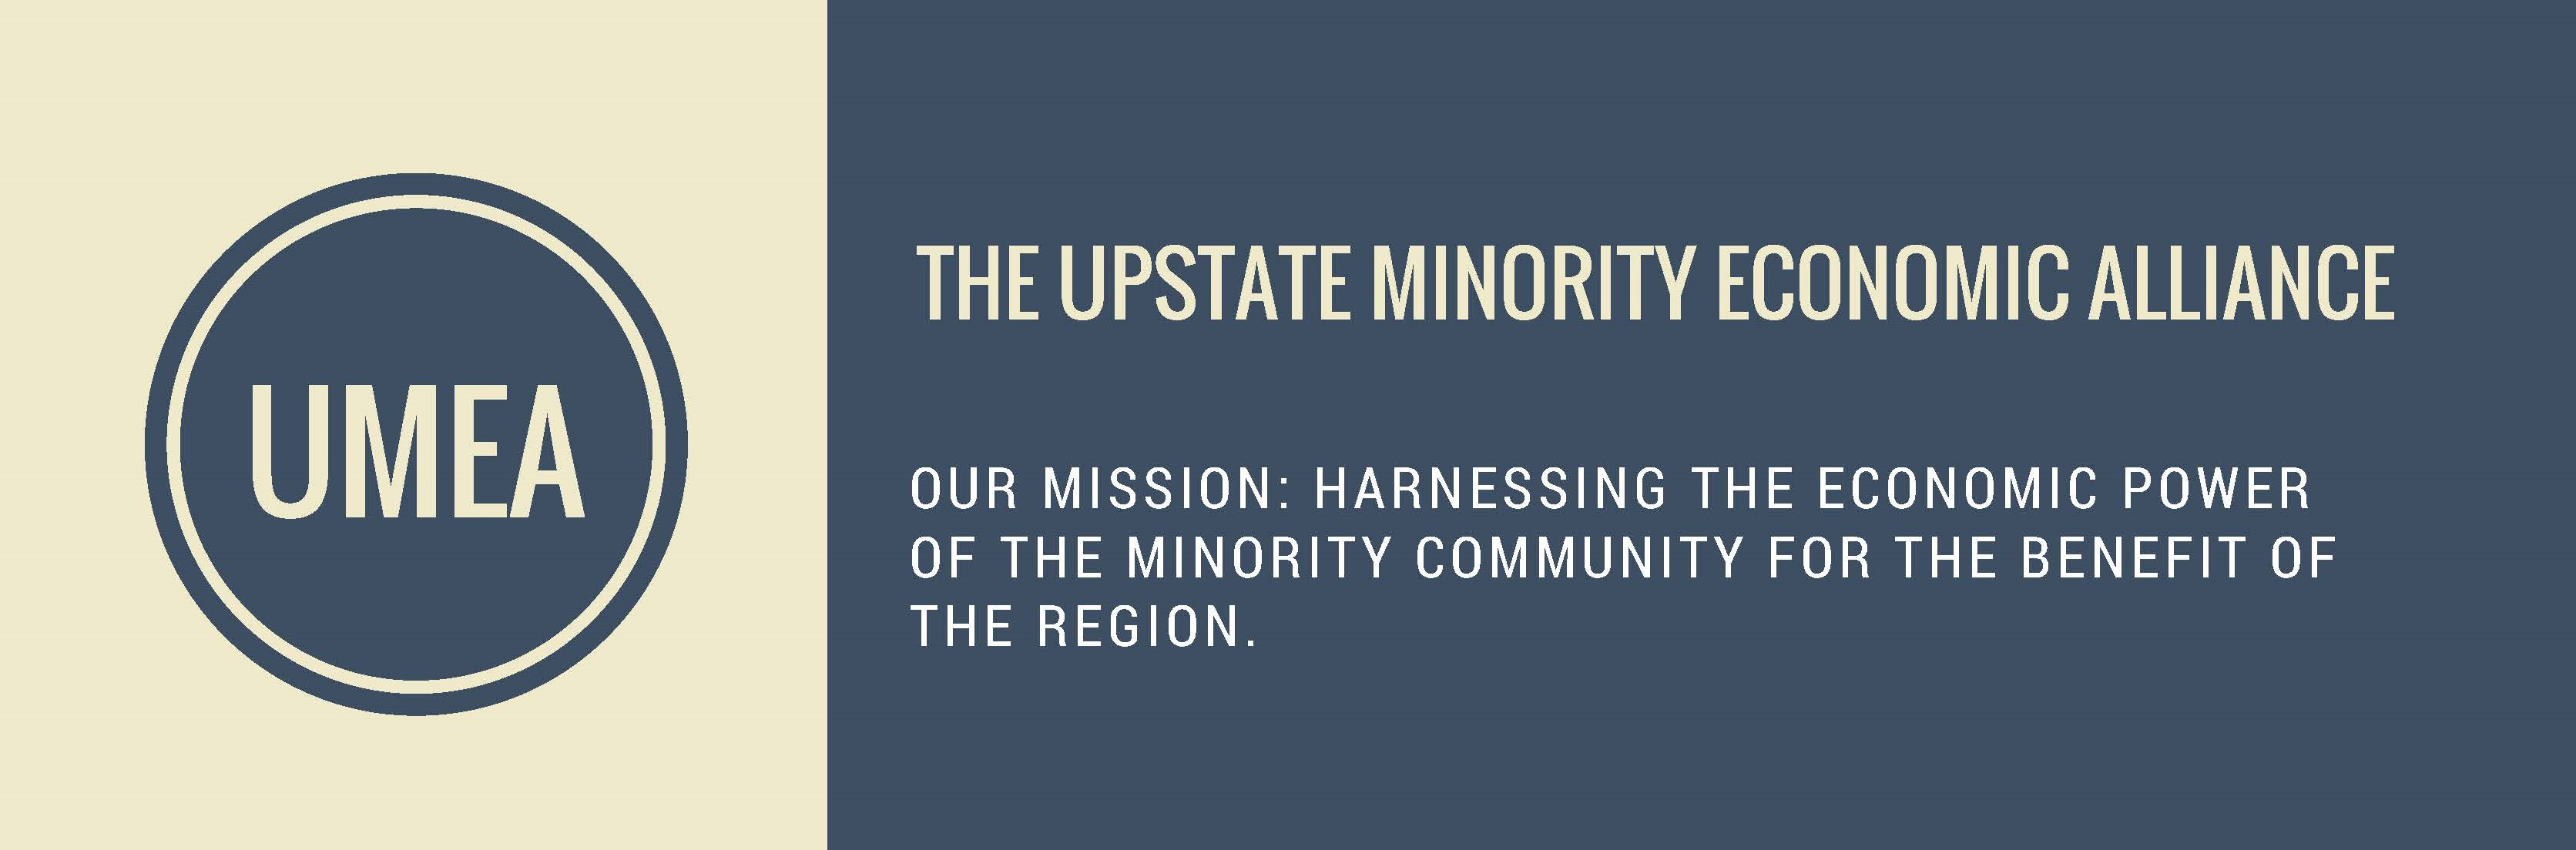 The Upstate Minority Economic Alliance